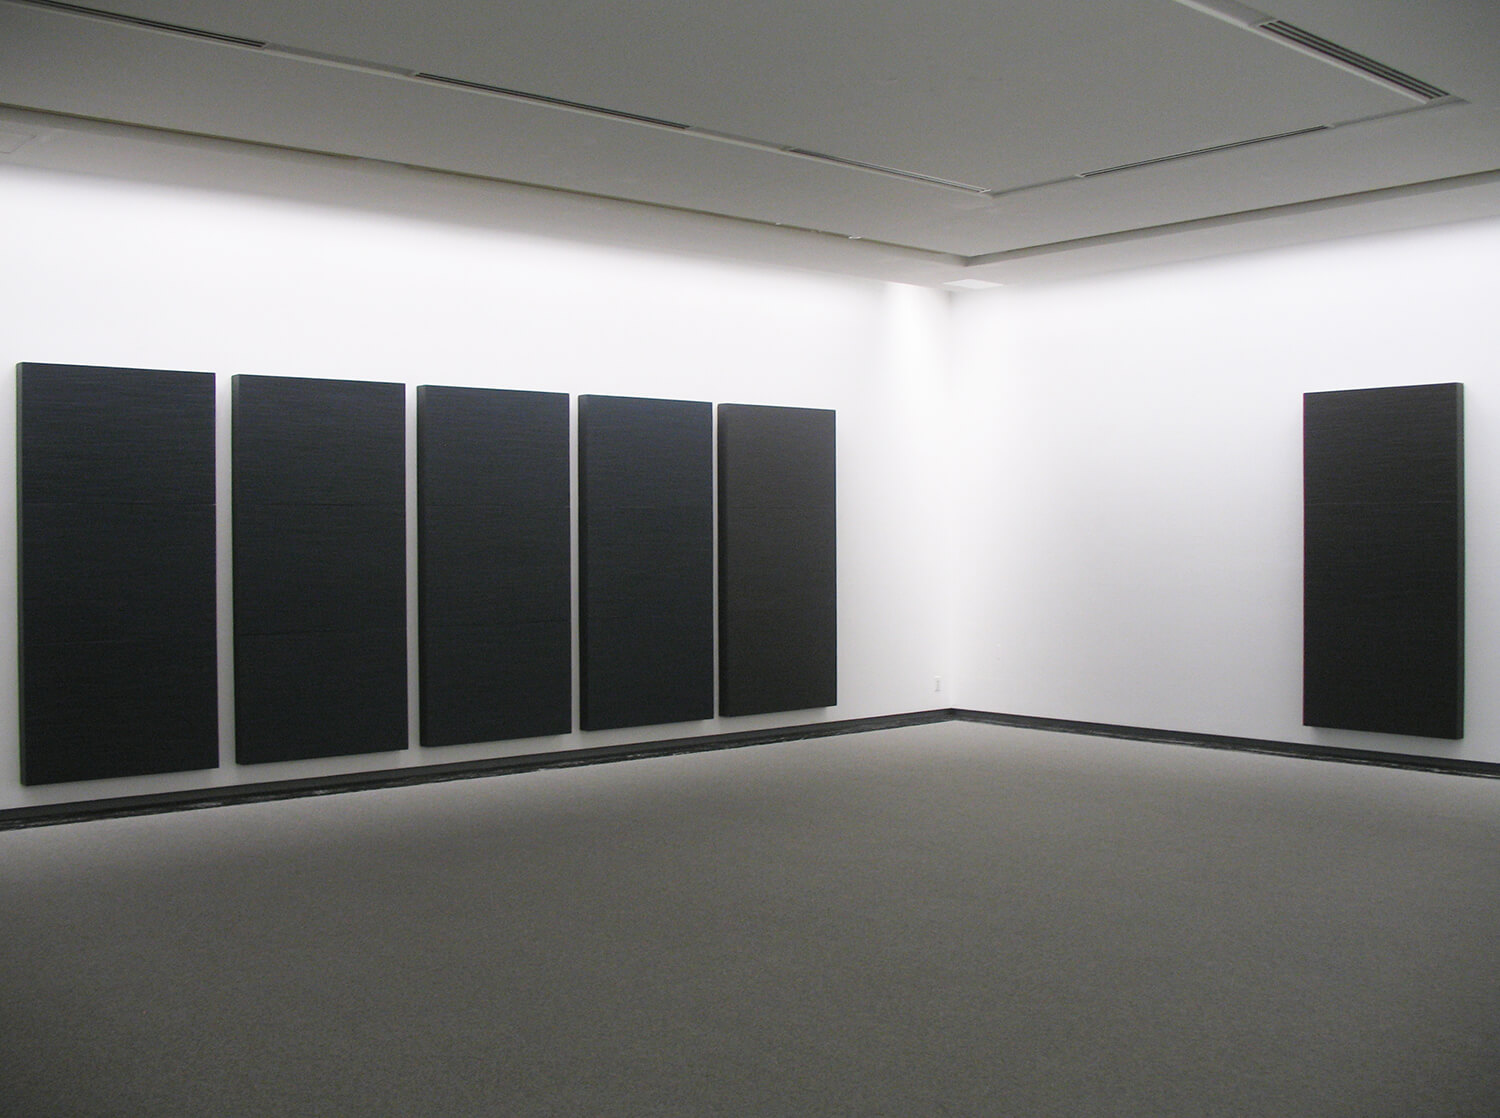 mettalic dark blue and mettalic dark gray, 1990<br>oil, bee-wax, paper tape on honeycomb board (3 panels/ 6 pieces) / 243.2 x 116.8 x 11.9 cm each / courtesy of Gallery Yamaguchi, Osaka